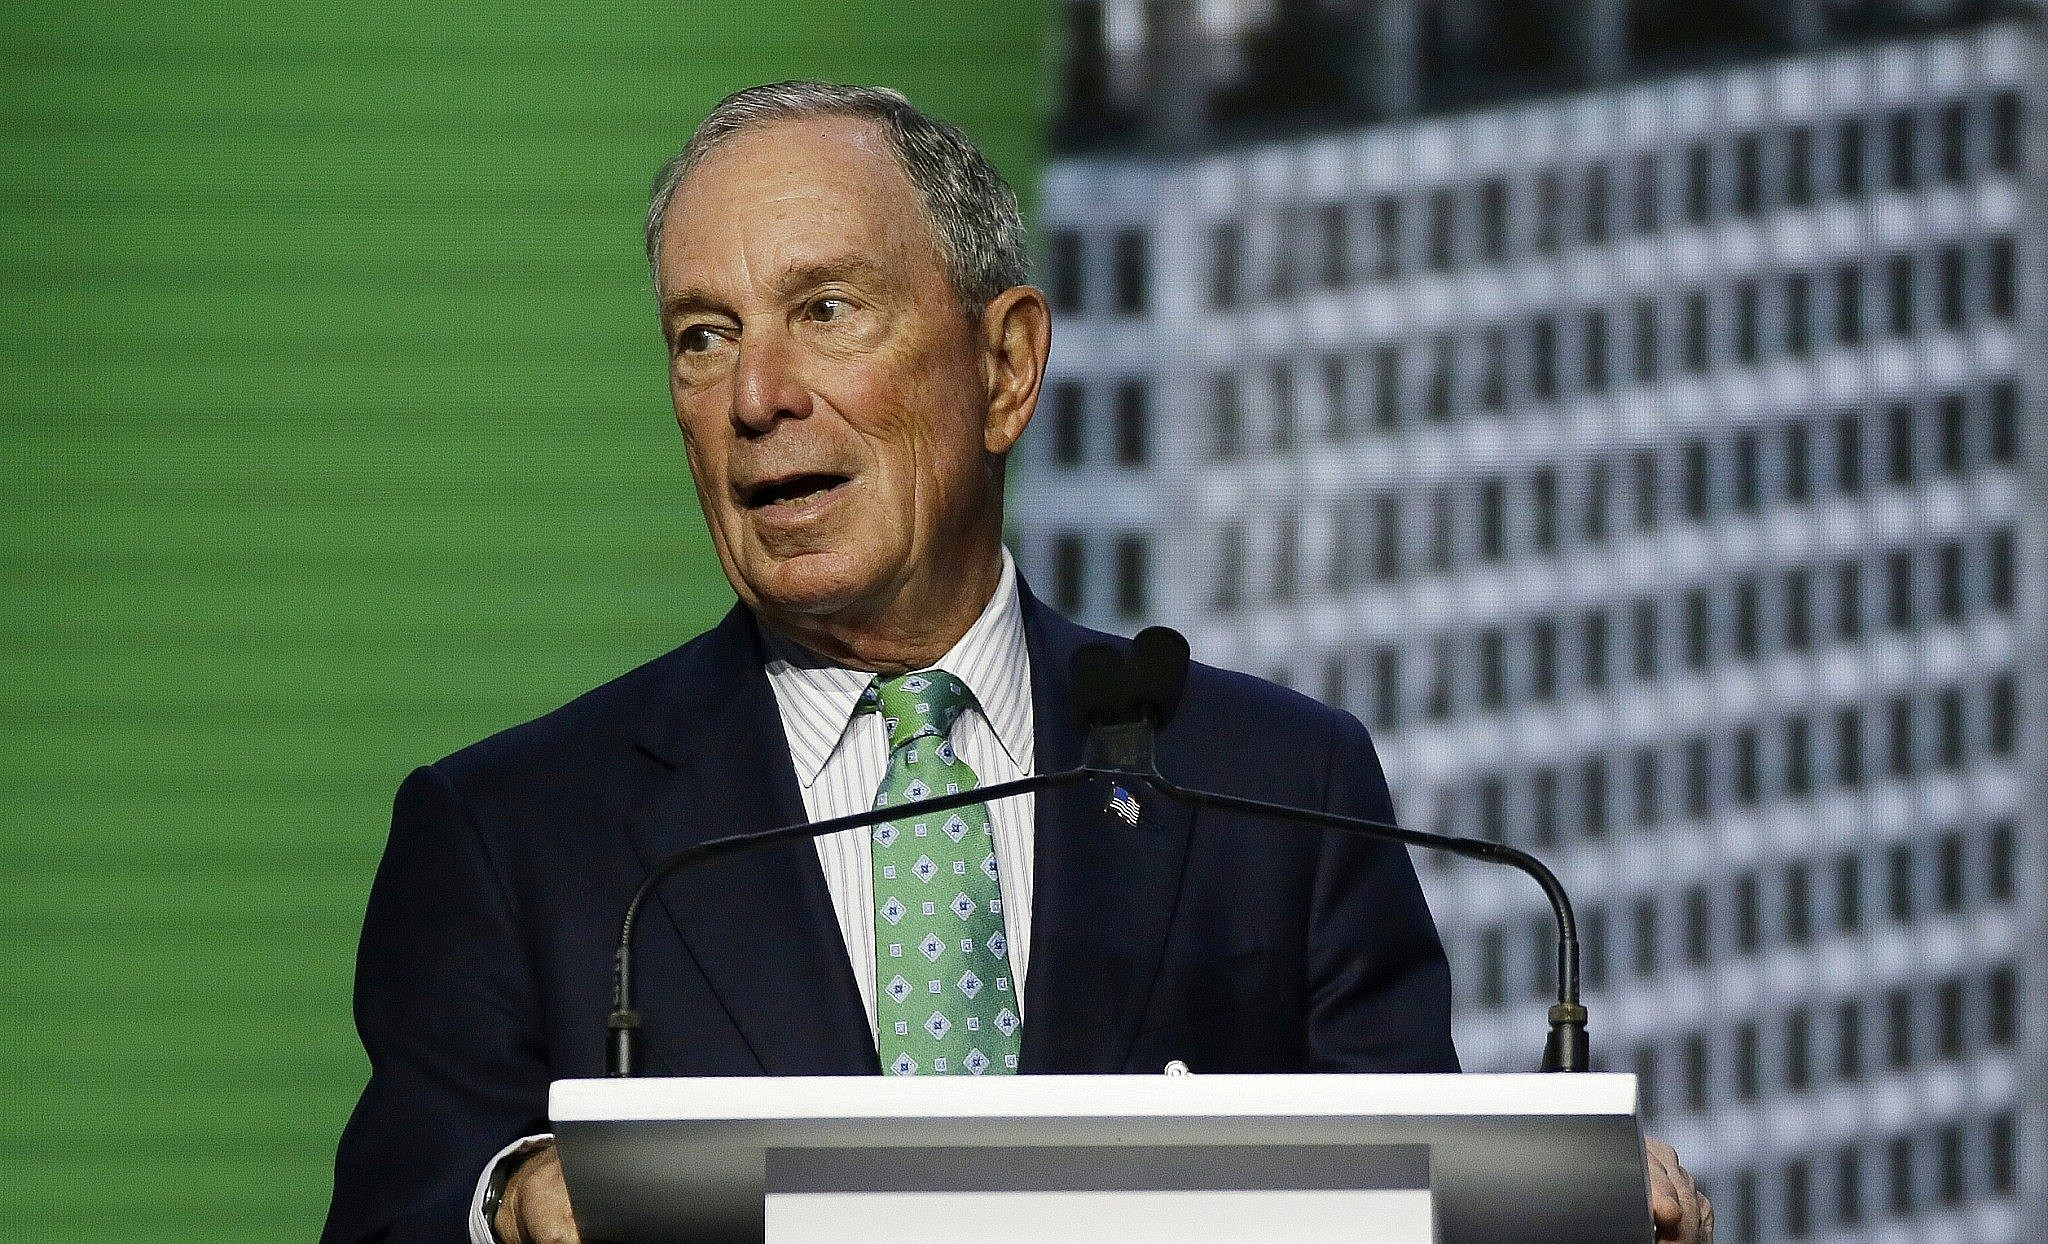 Bloomberg Rejoins Democrats, Signals Interest in Presidential Bid